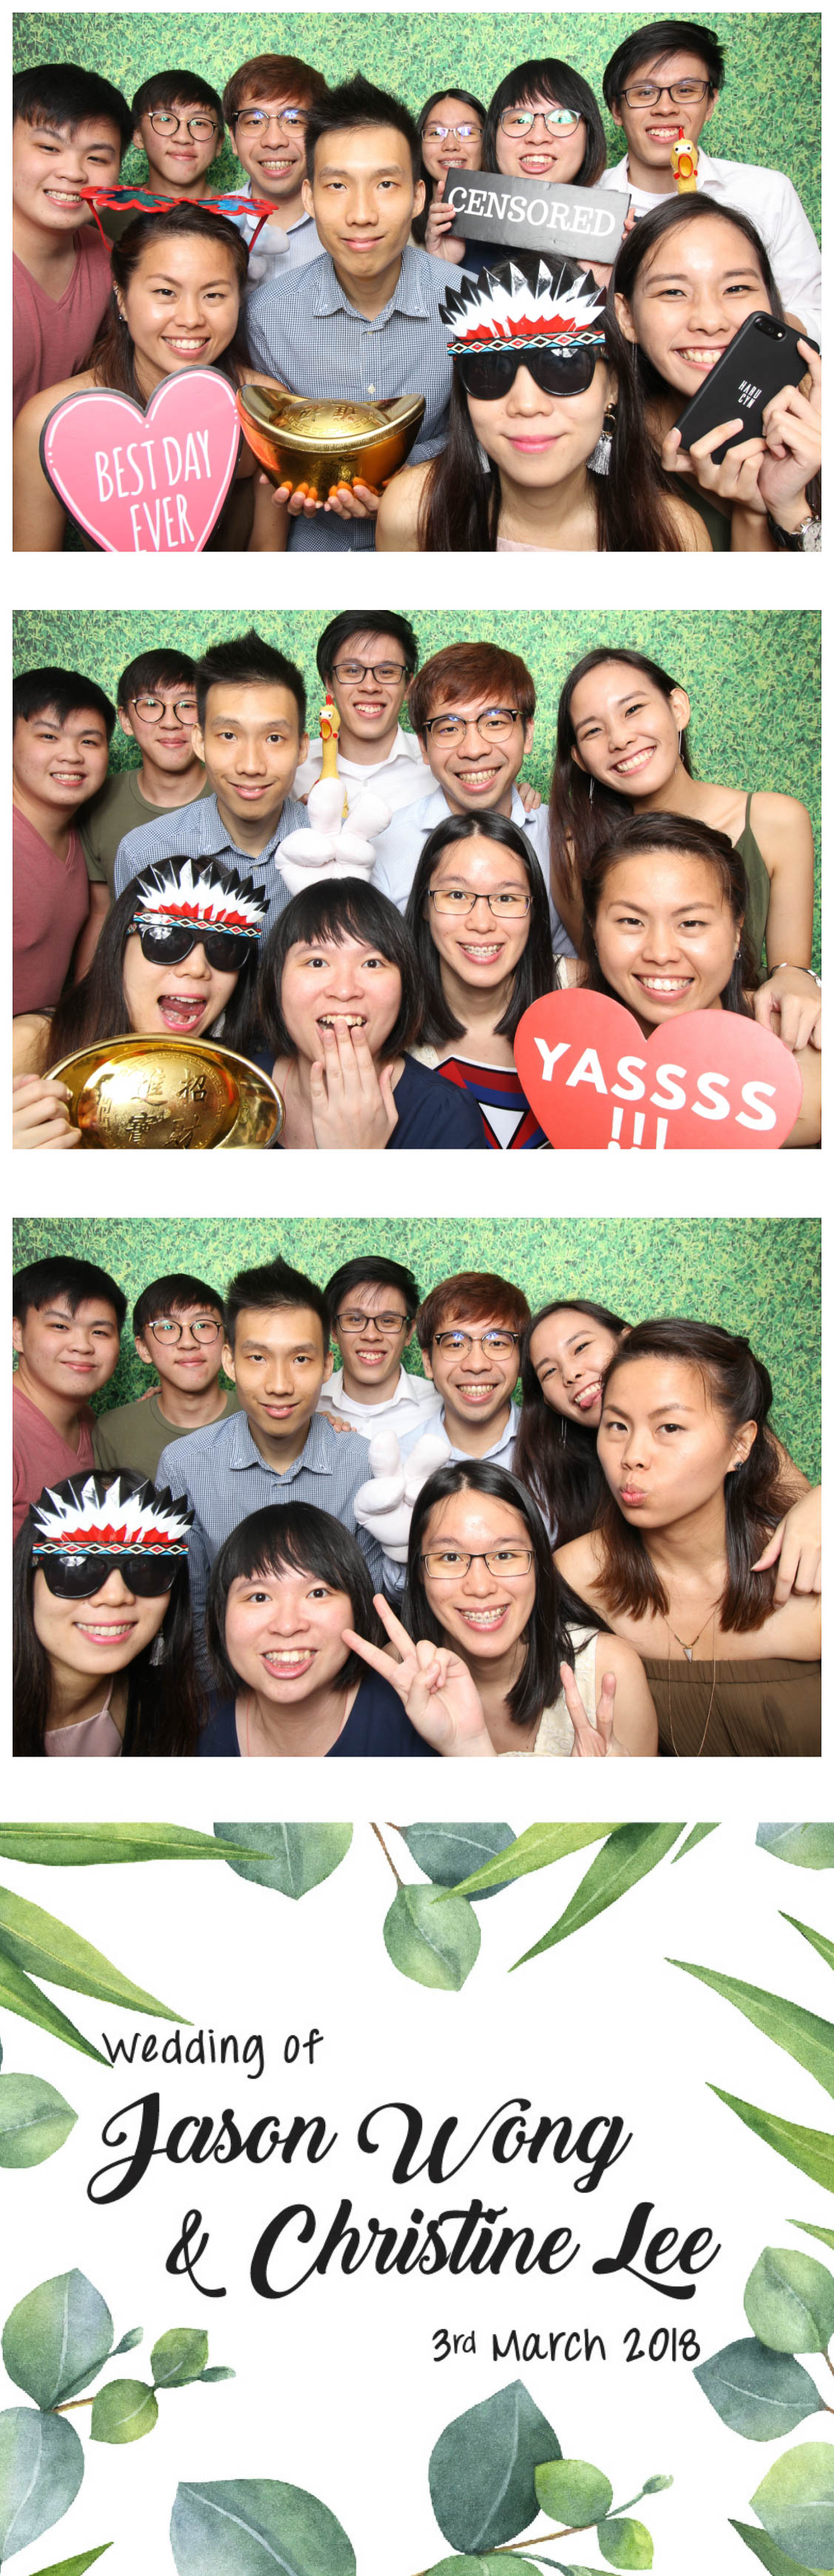 Photobooth 0302-40